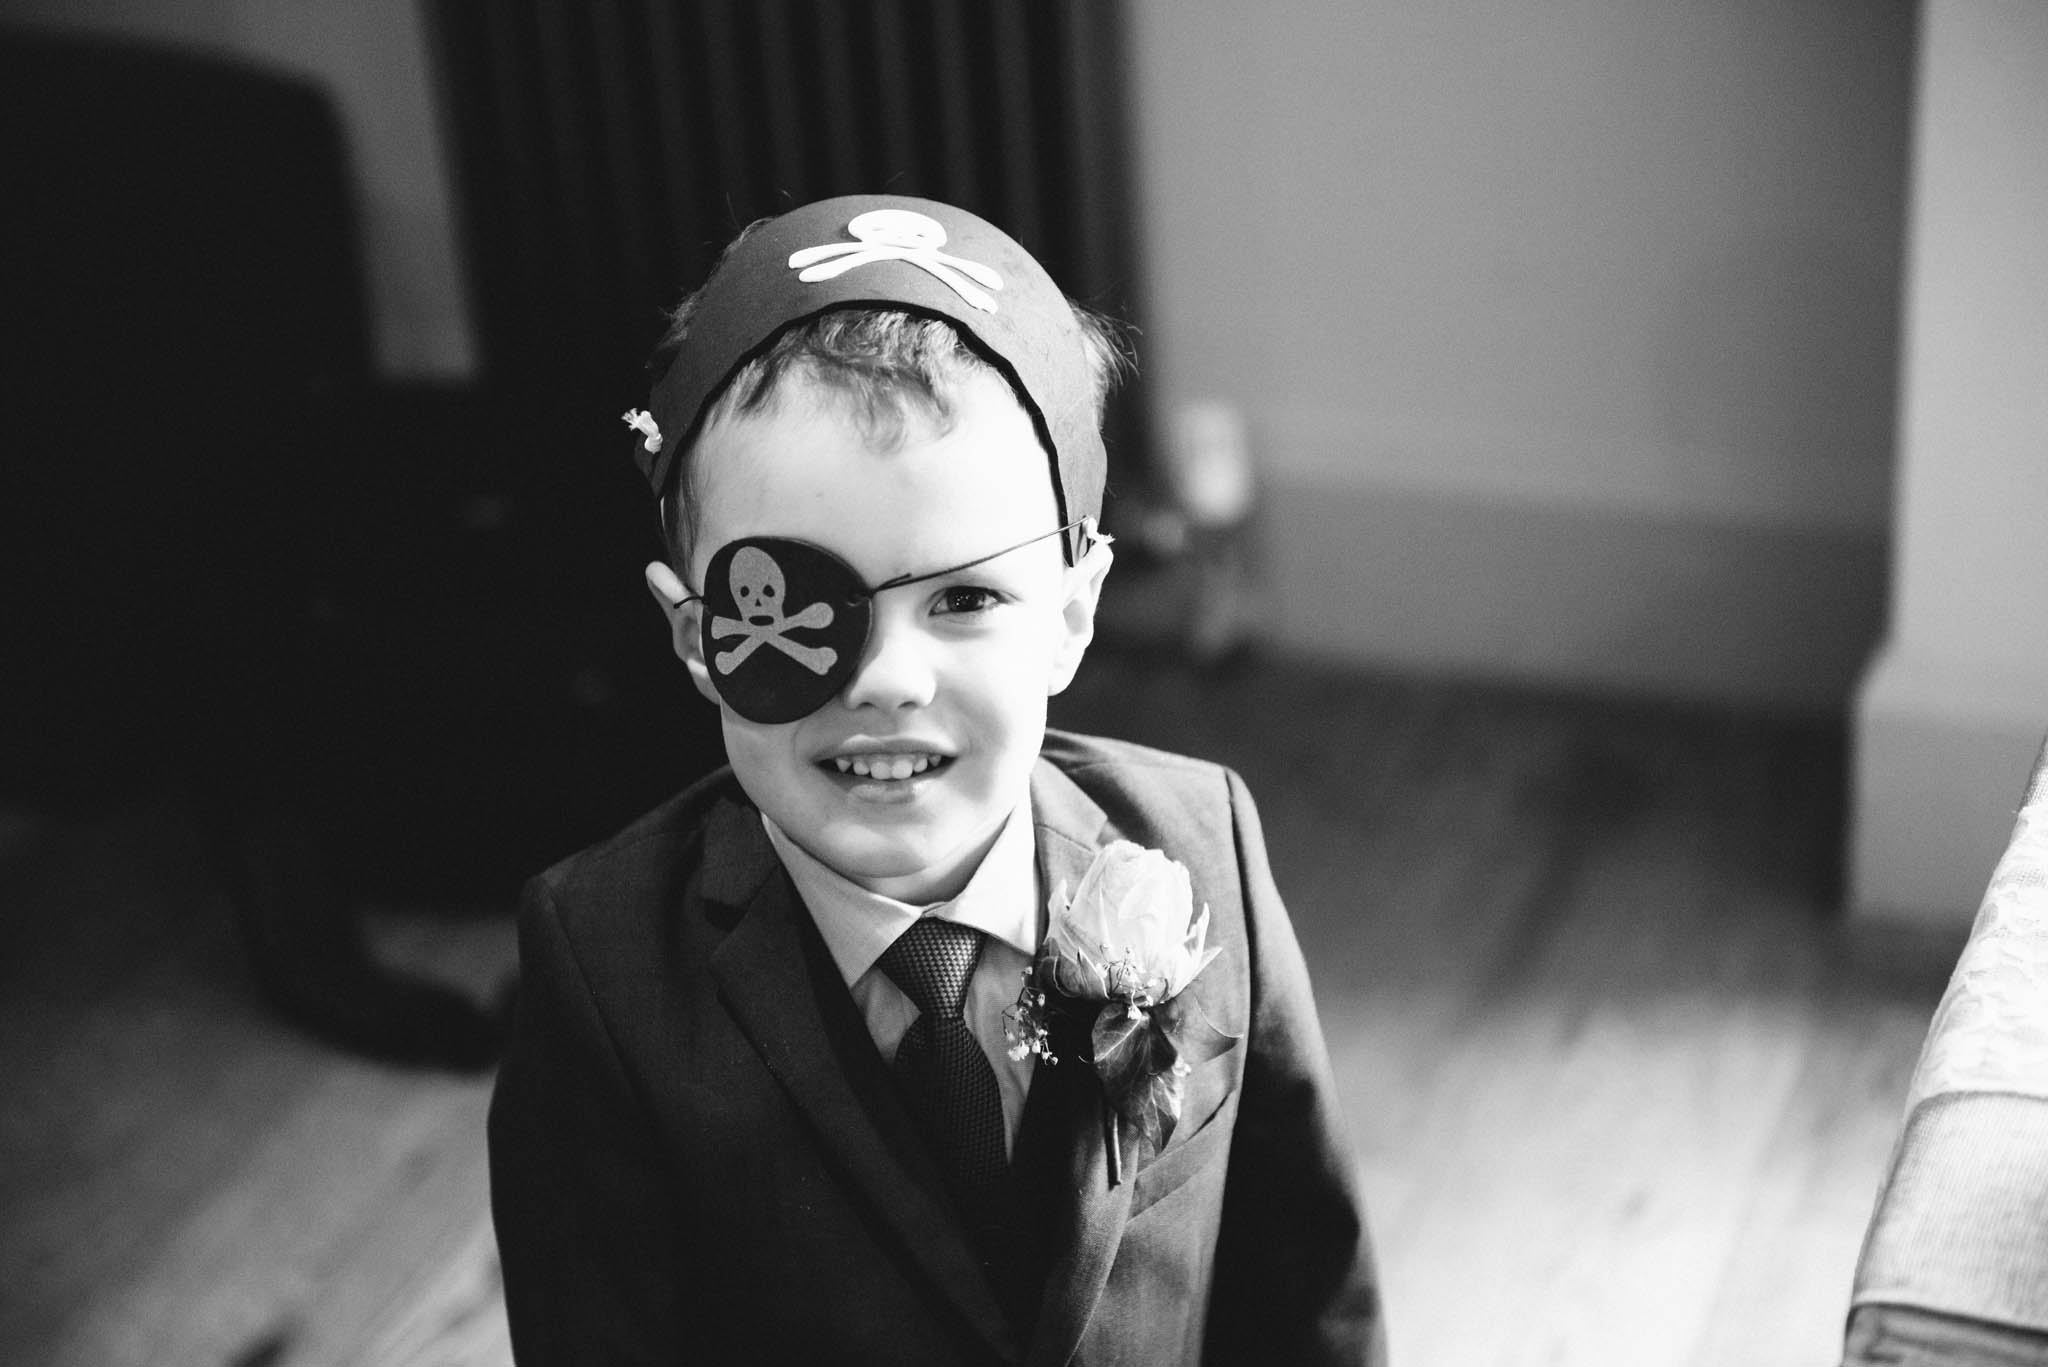 pirate-wedding-blog-scott-stockwell-photography-end-2017.jpg